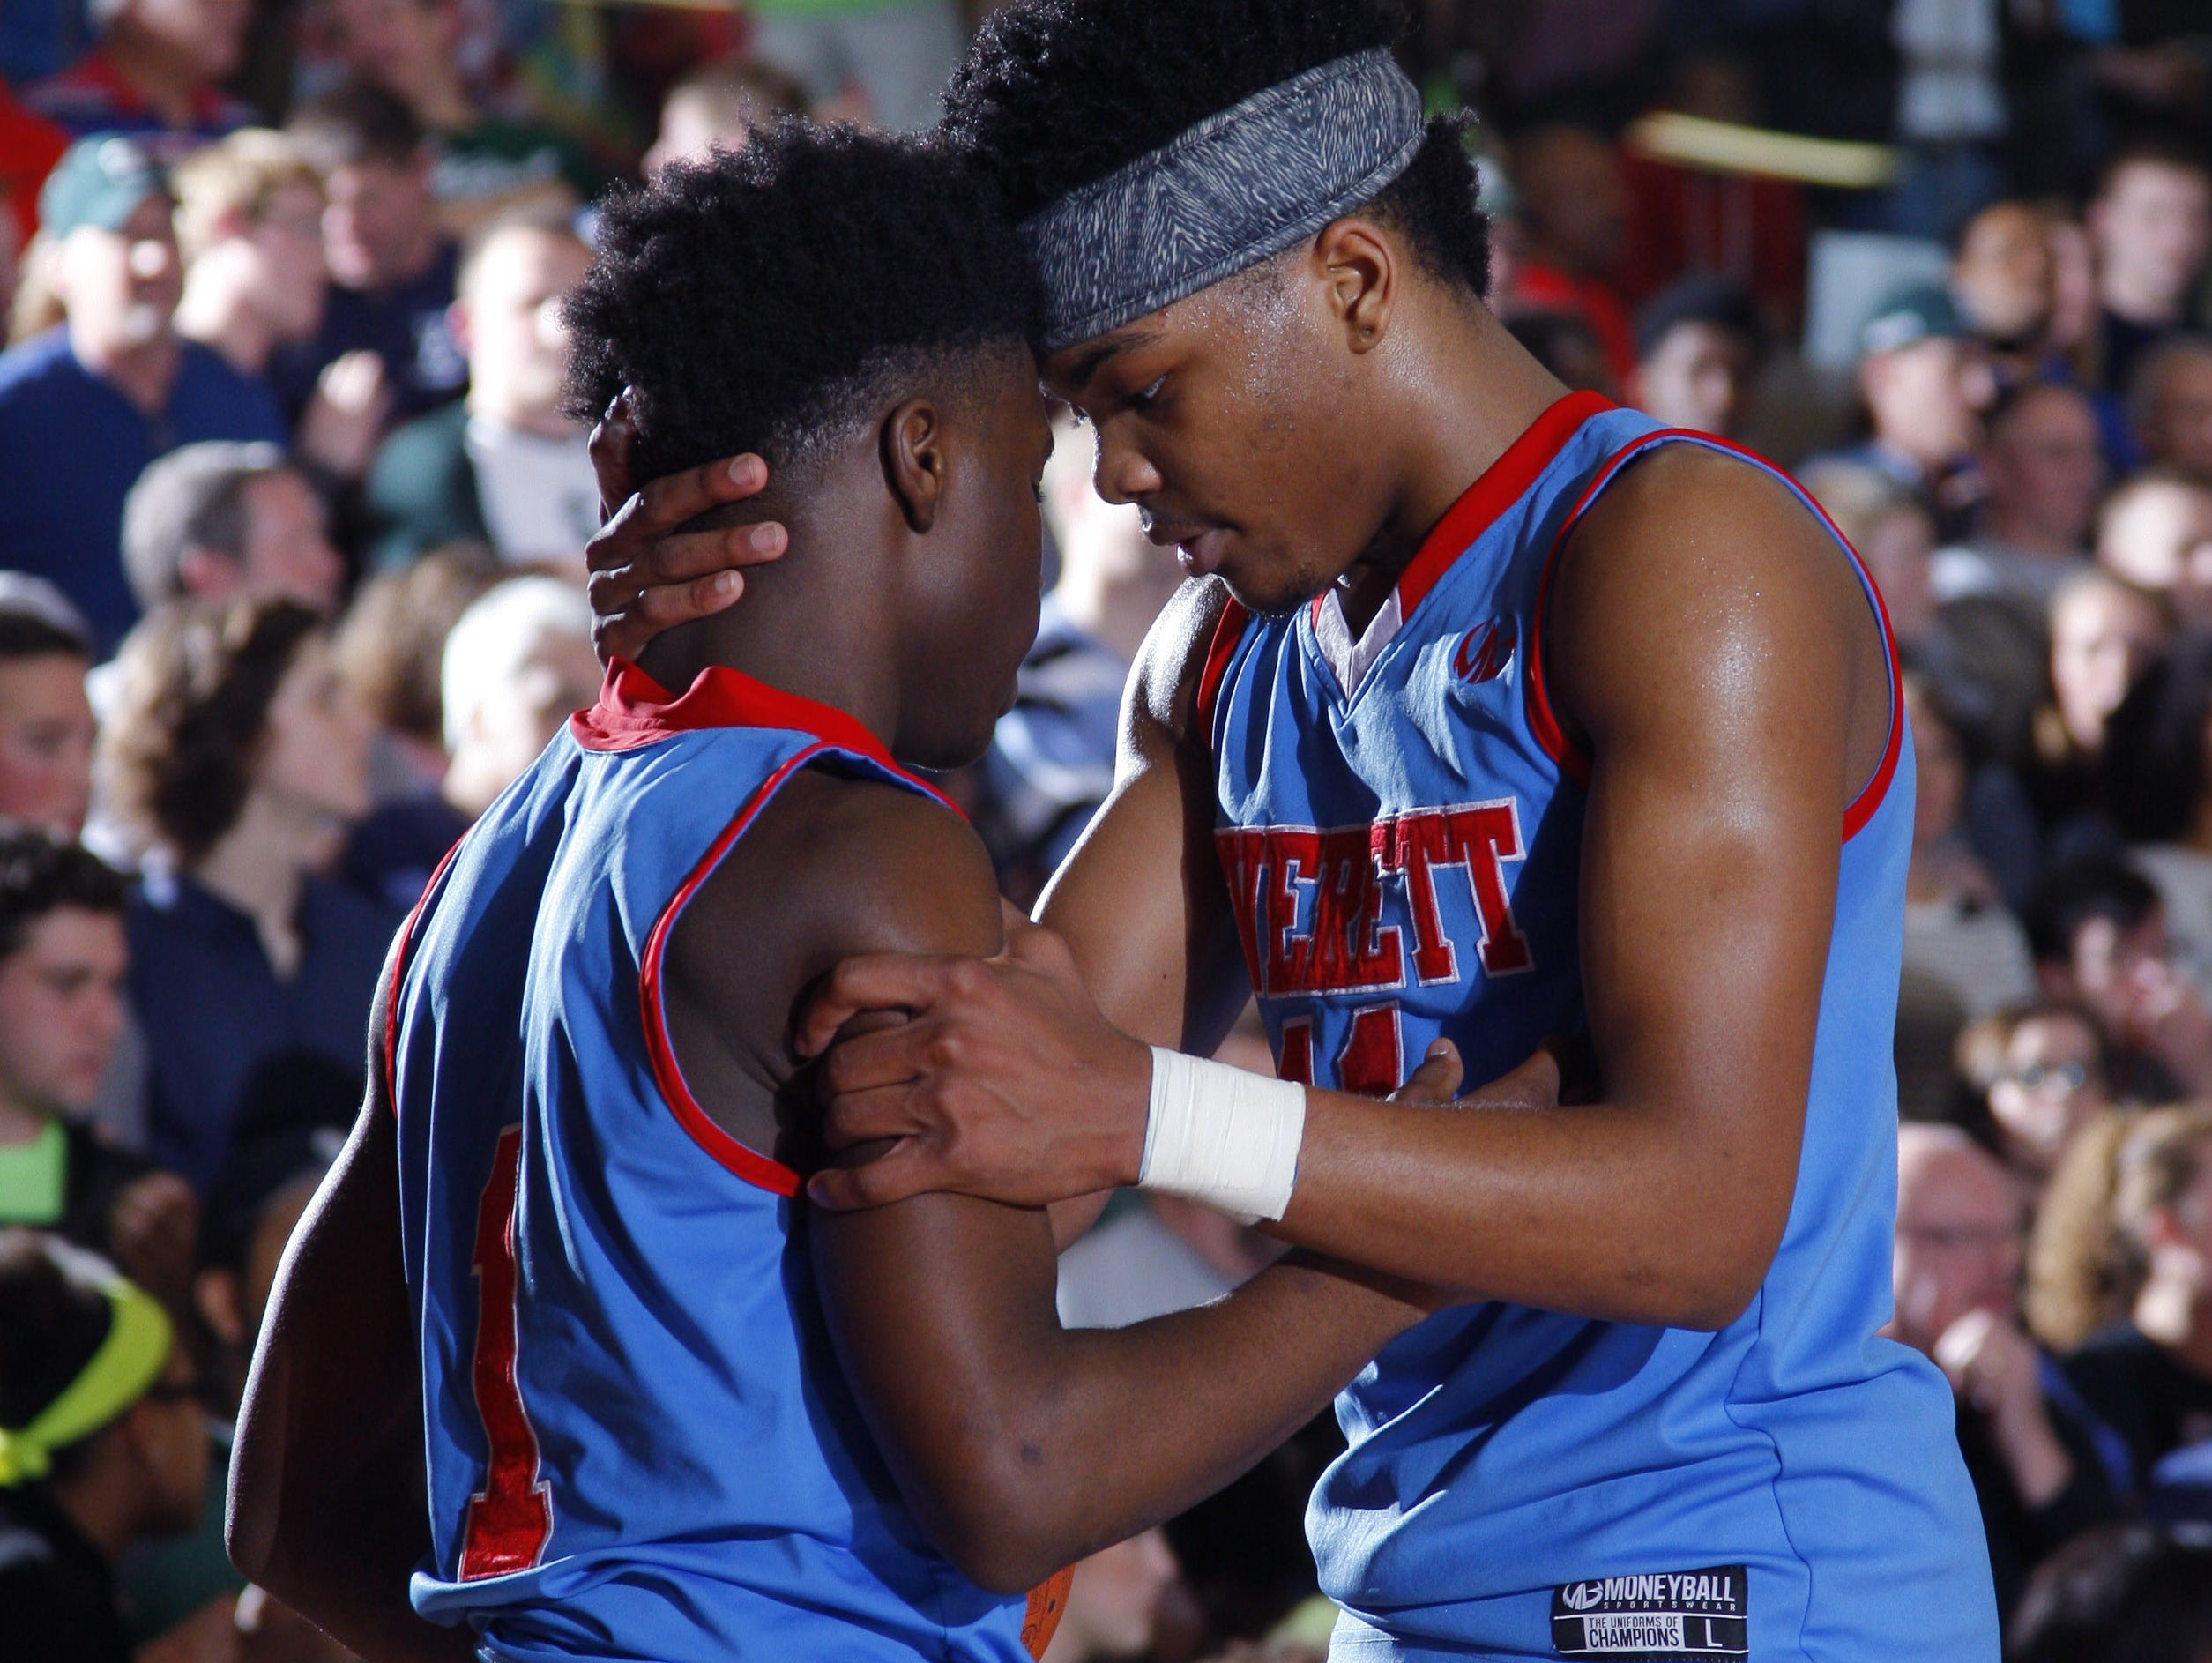 Everett's Jamyrin Jackson, right, talks with Nyreel Powell late in the fourth quarter of their regional final win over East Lansing on March 16 at Mason High School.